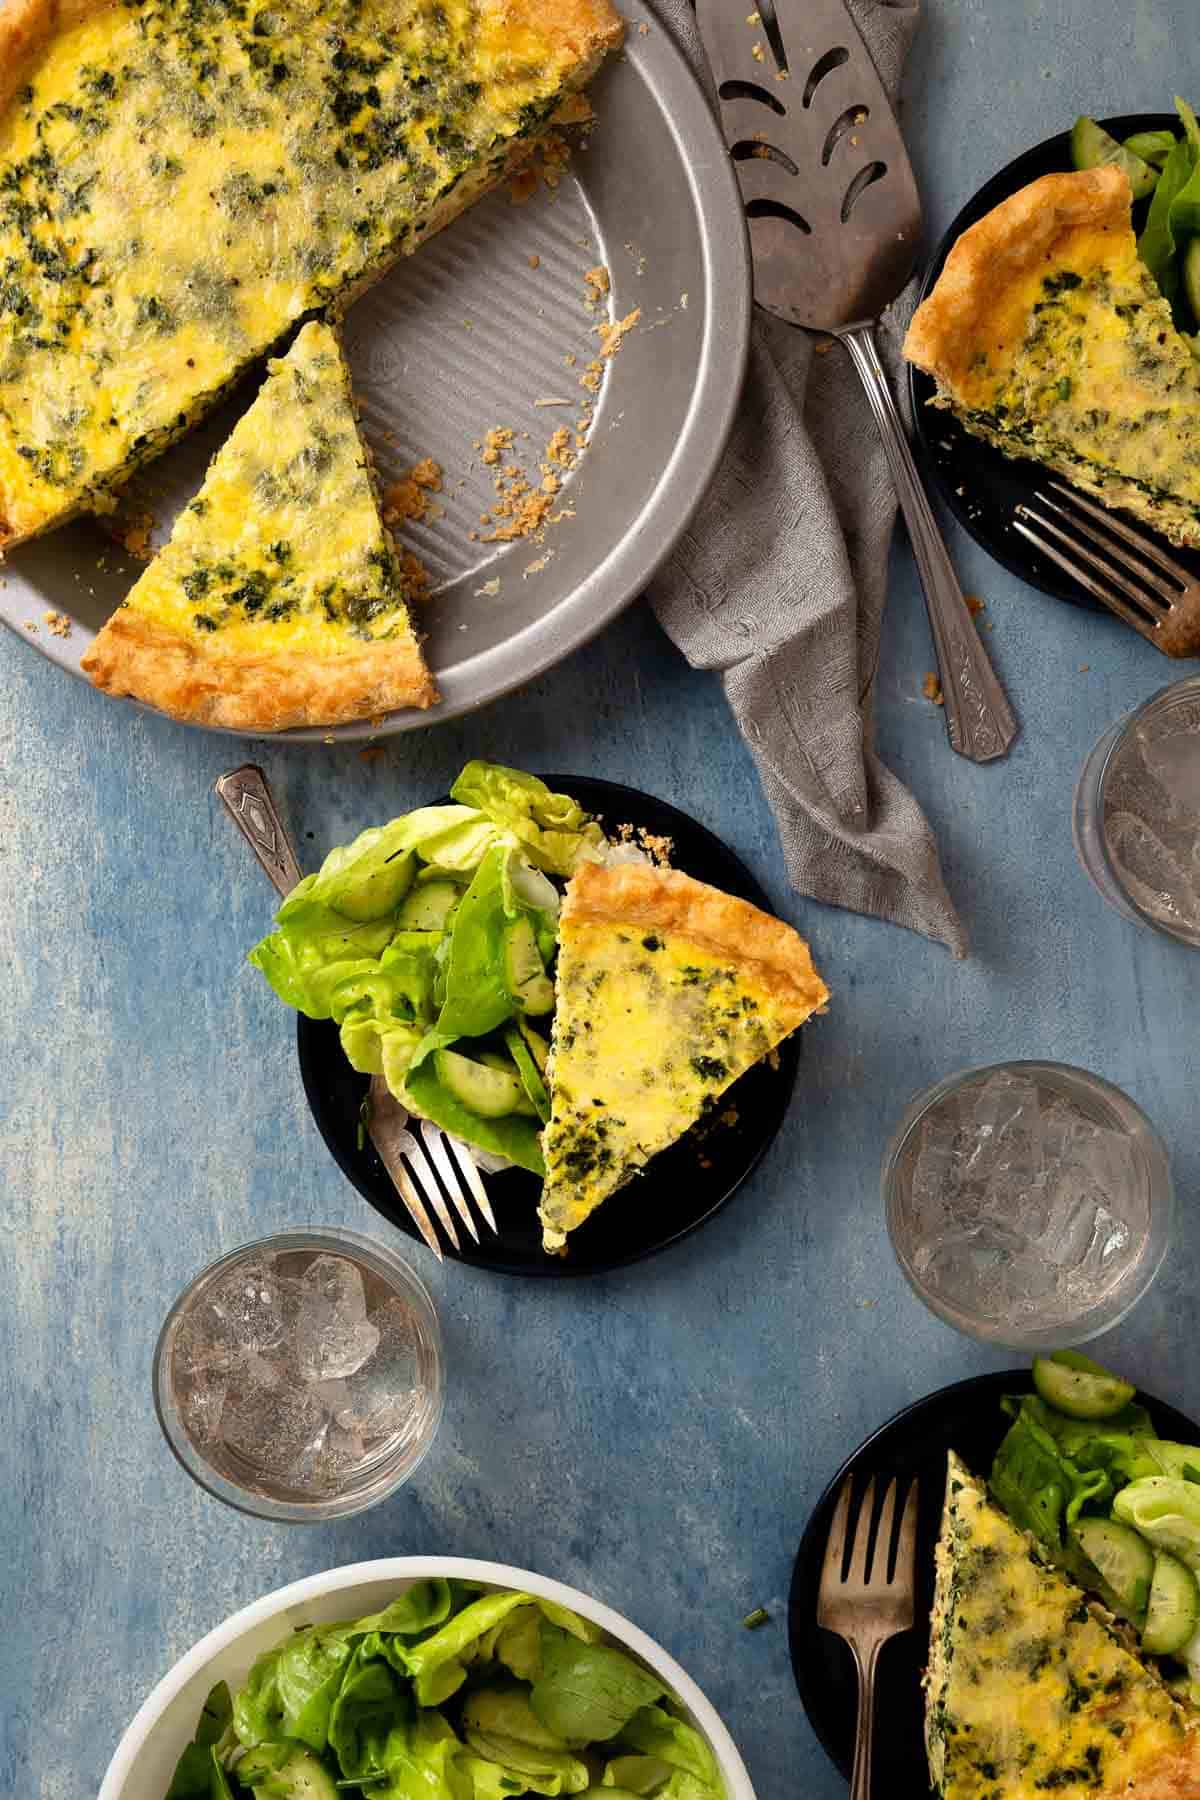 slices of yellow quiche on black plates with green salad on the side